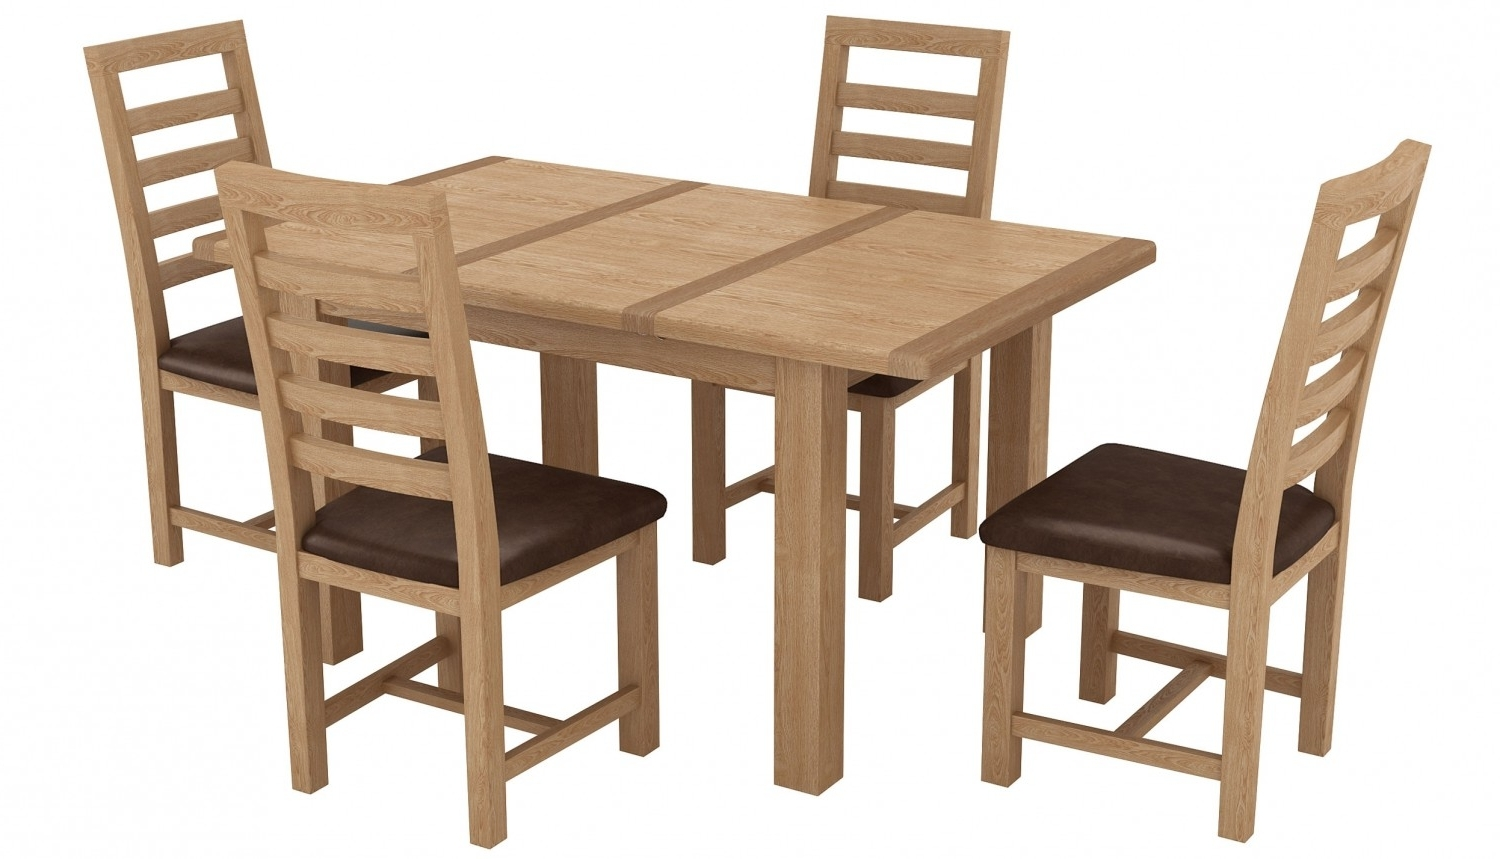 Extending Dining Table And Chairs Within Popular Extending Dining Table Set 150/ (View 22 of 25)